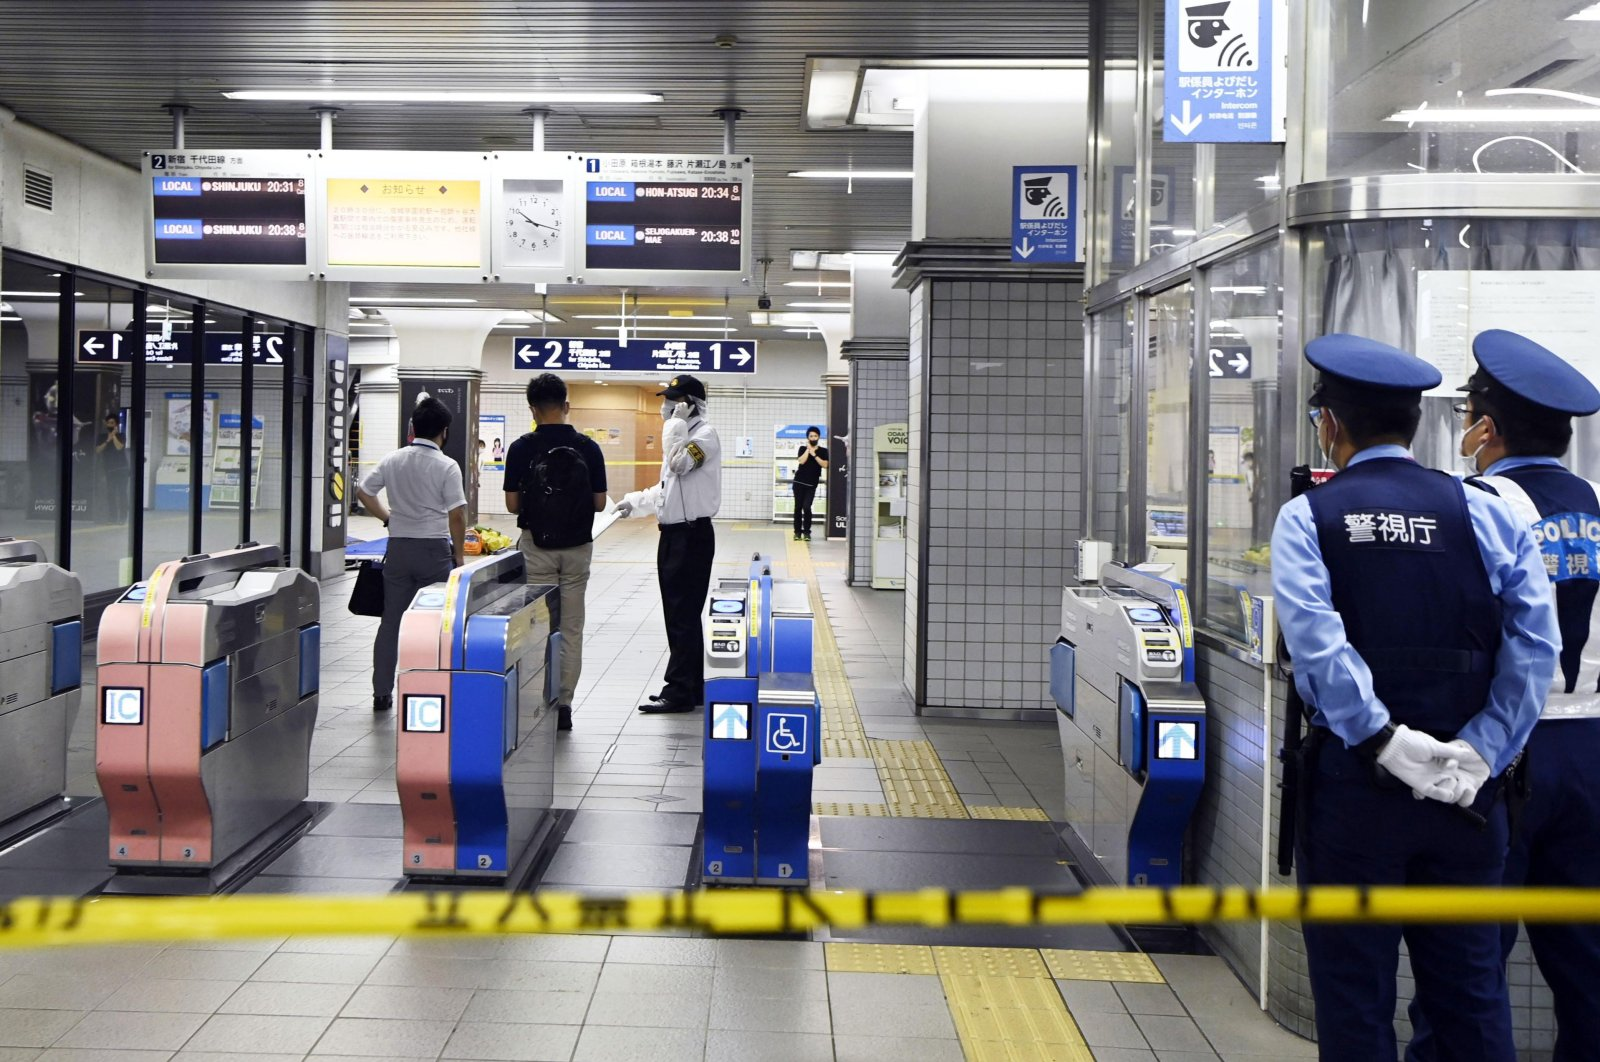 Policemen stand as ticket gates are sealed off at Soshigaya Okura Station after stabbing on a commuter train, in Tokyo, Aug. 6, 2021. (Kyodo News via AP)